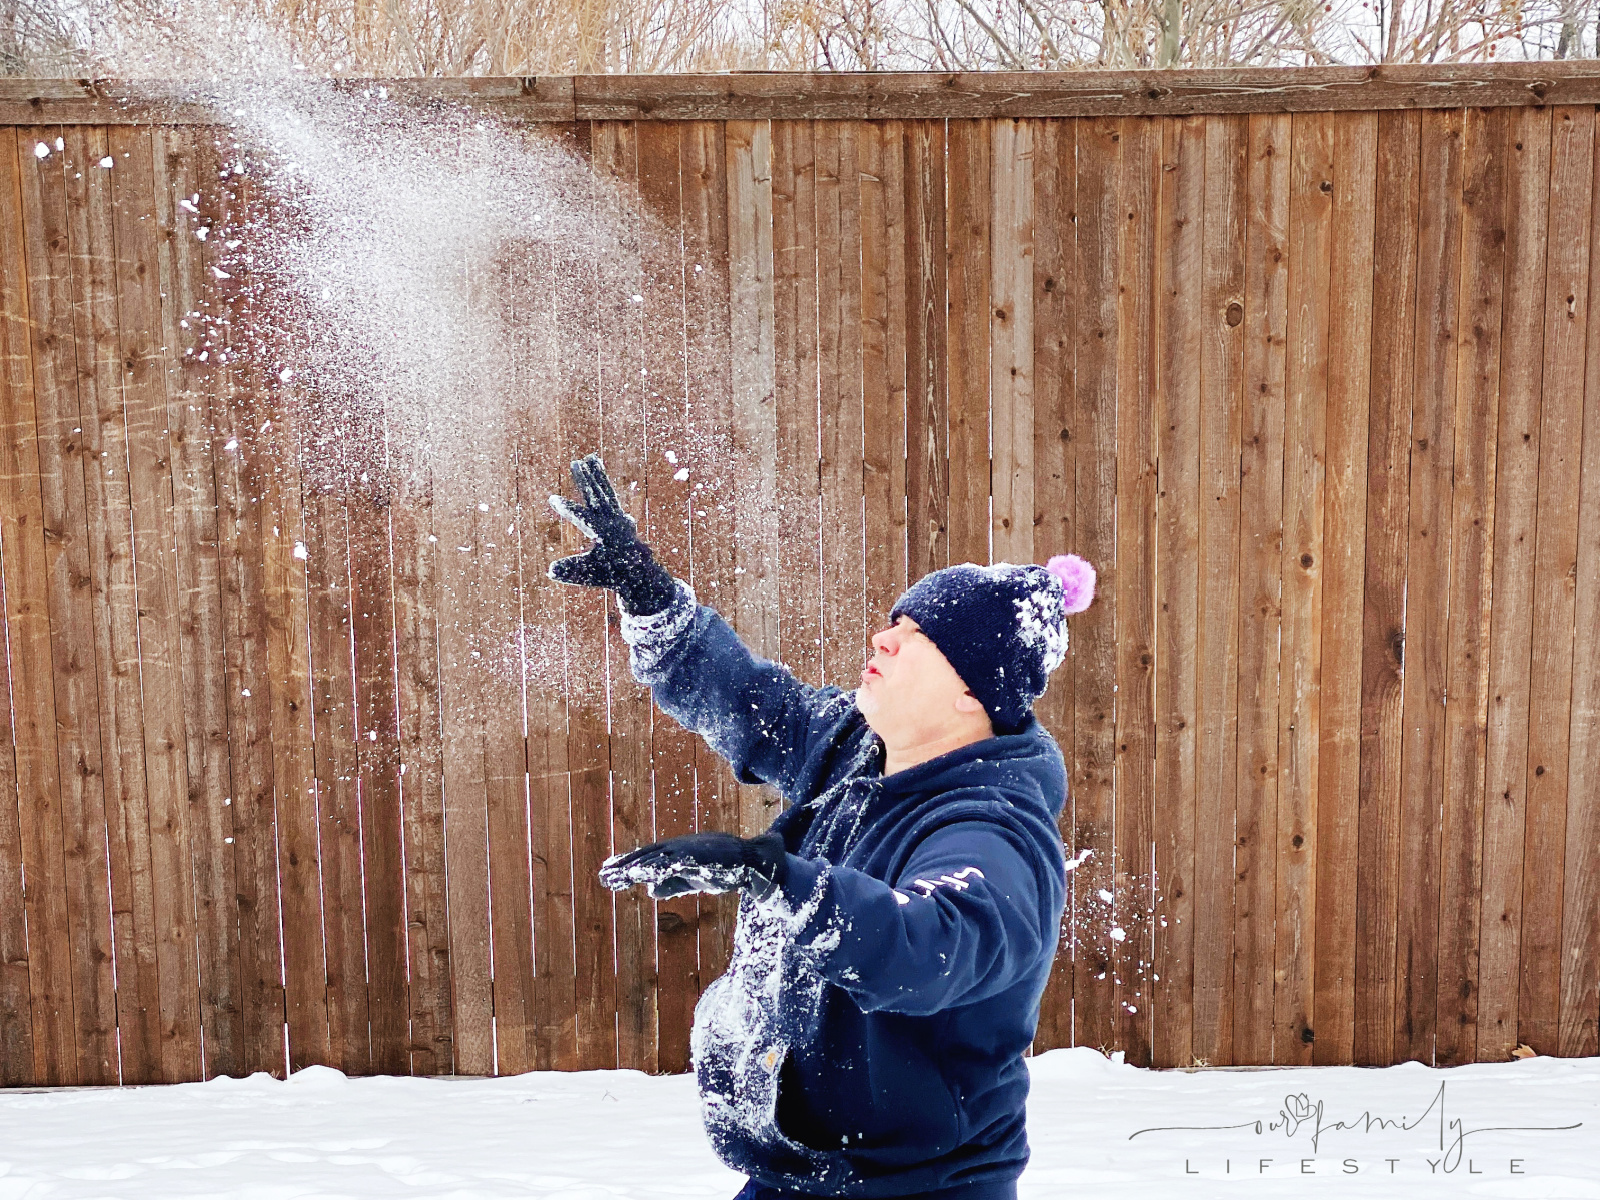 dad throwing powdery snowball at kids